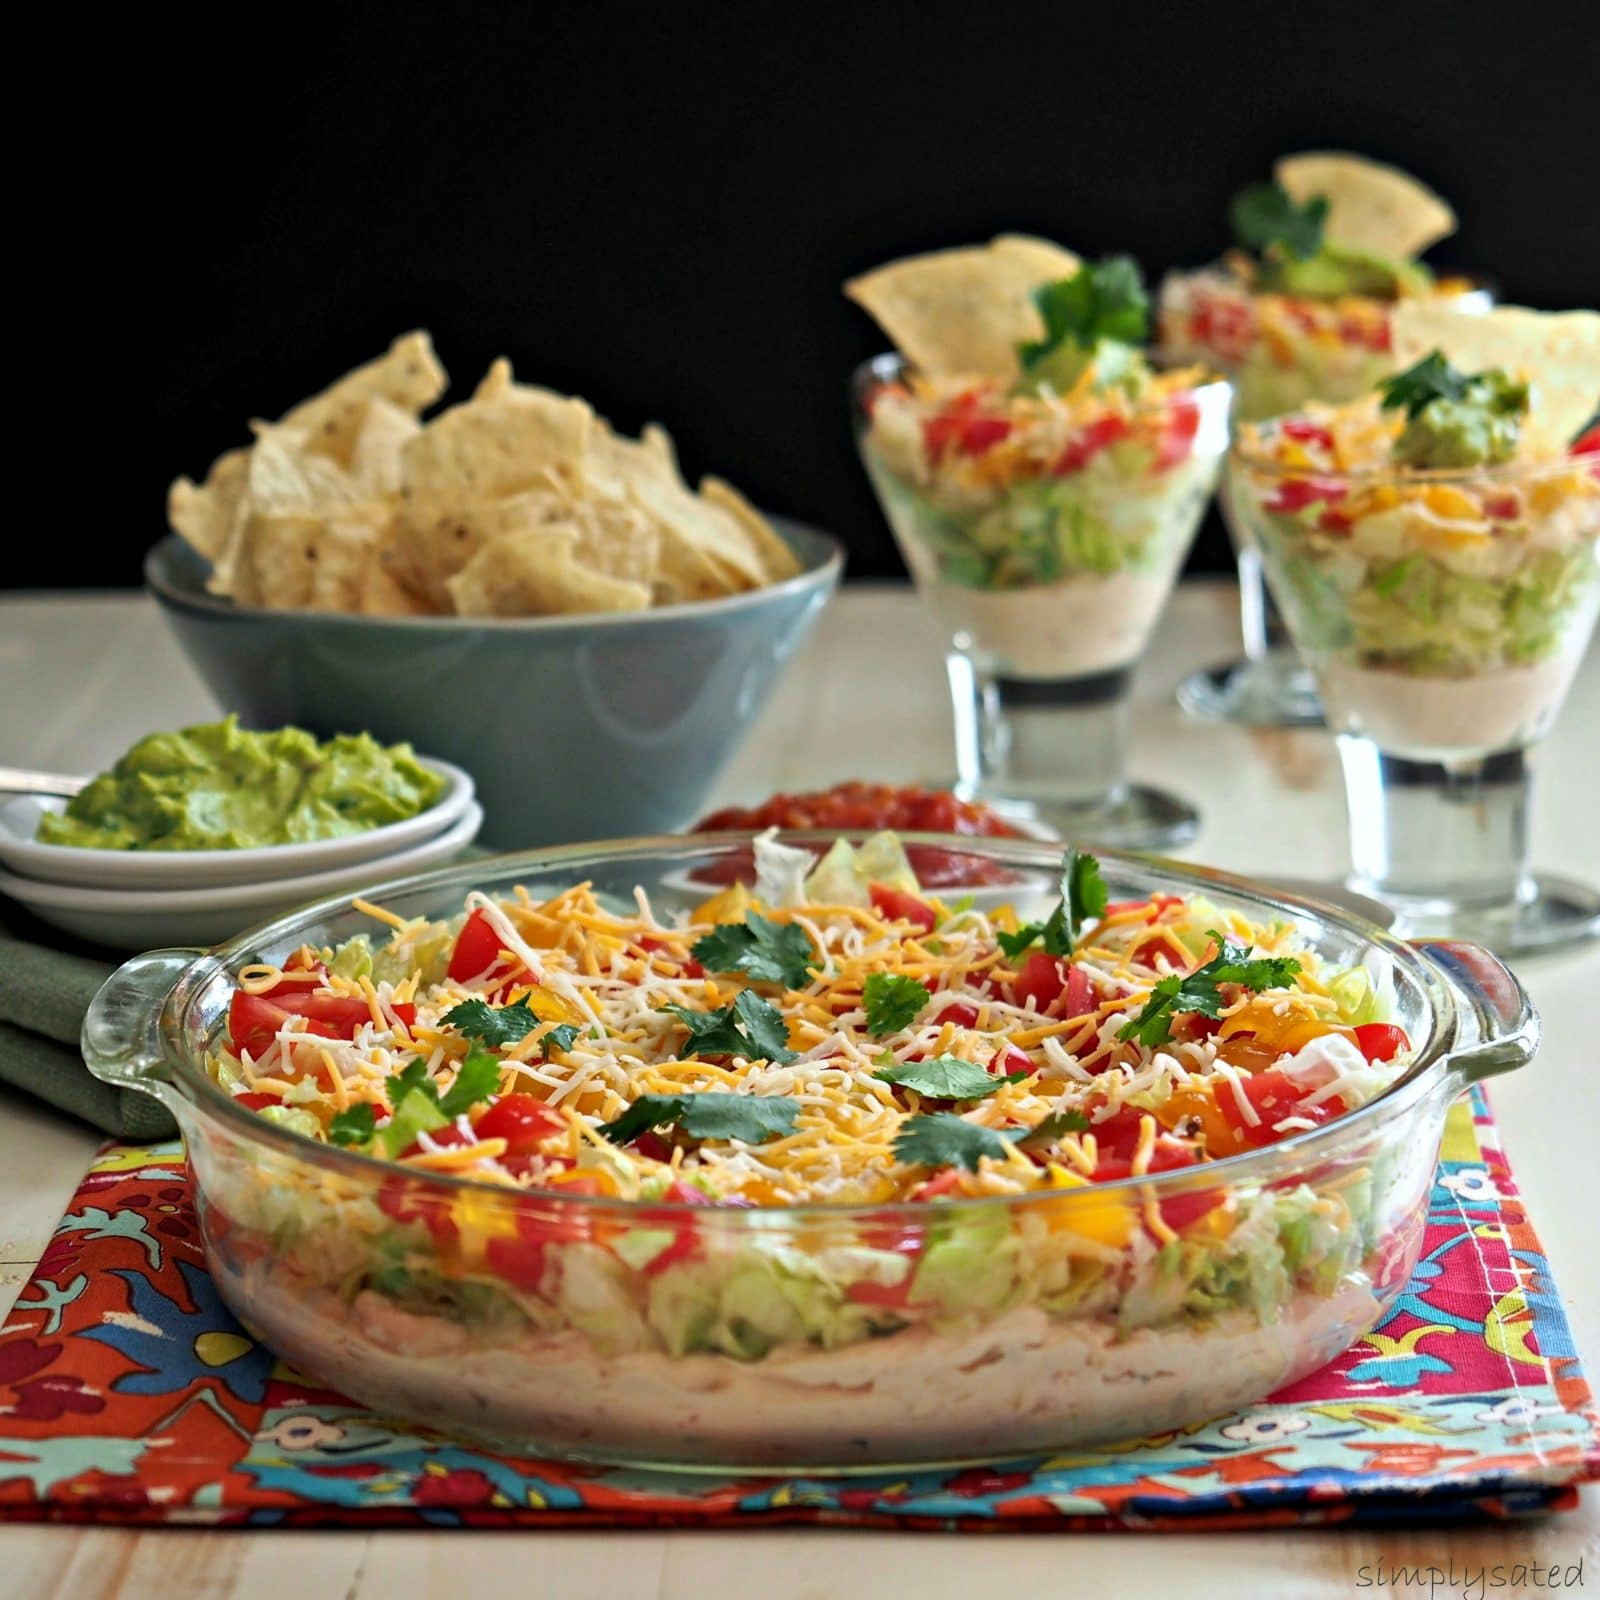 Layered Mexican Dip - Simply Sated